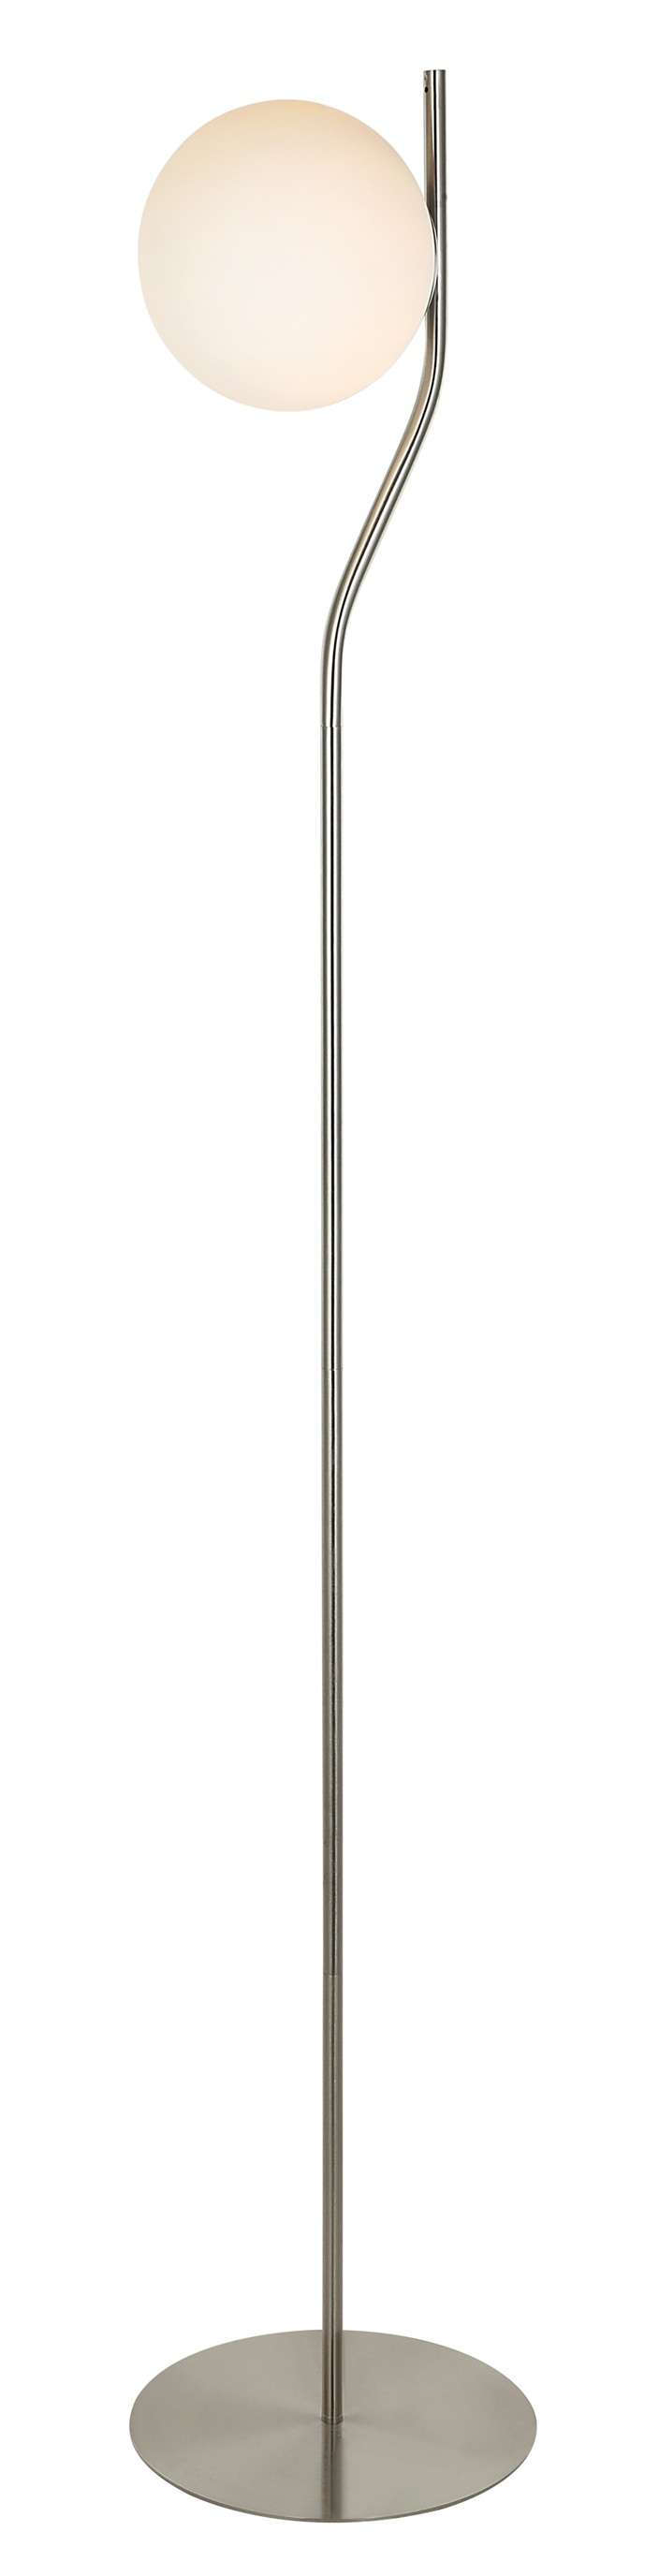 Saintly excellent decorative floor lamp order now for kitchen-2